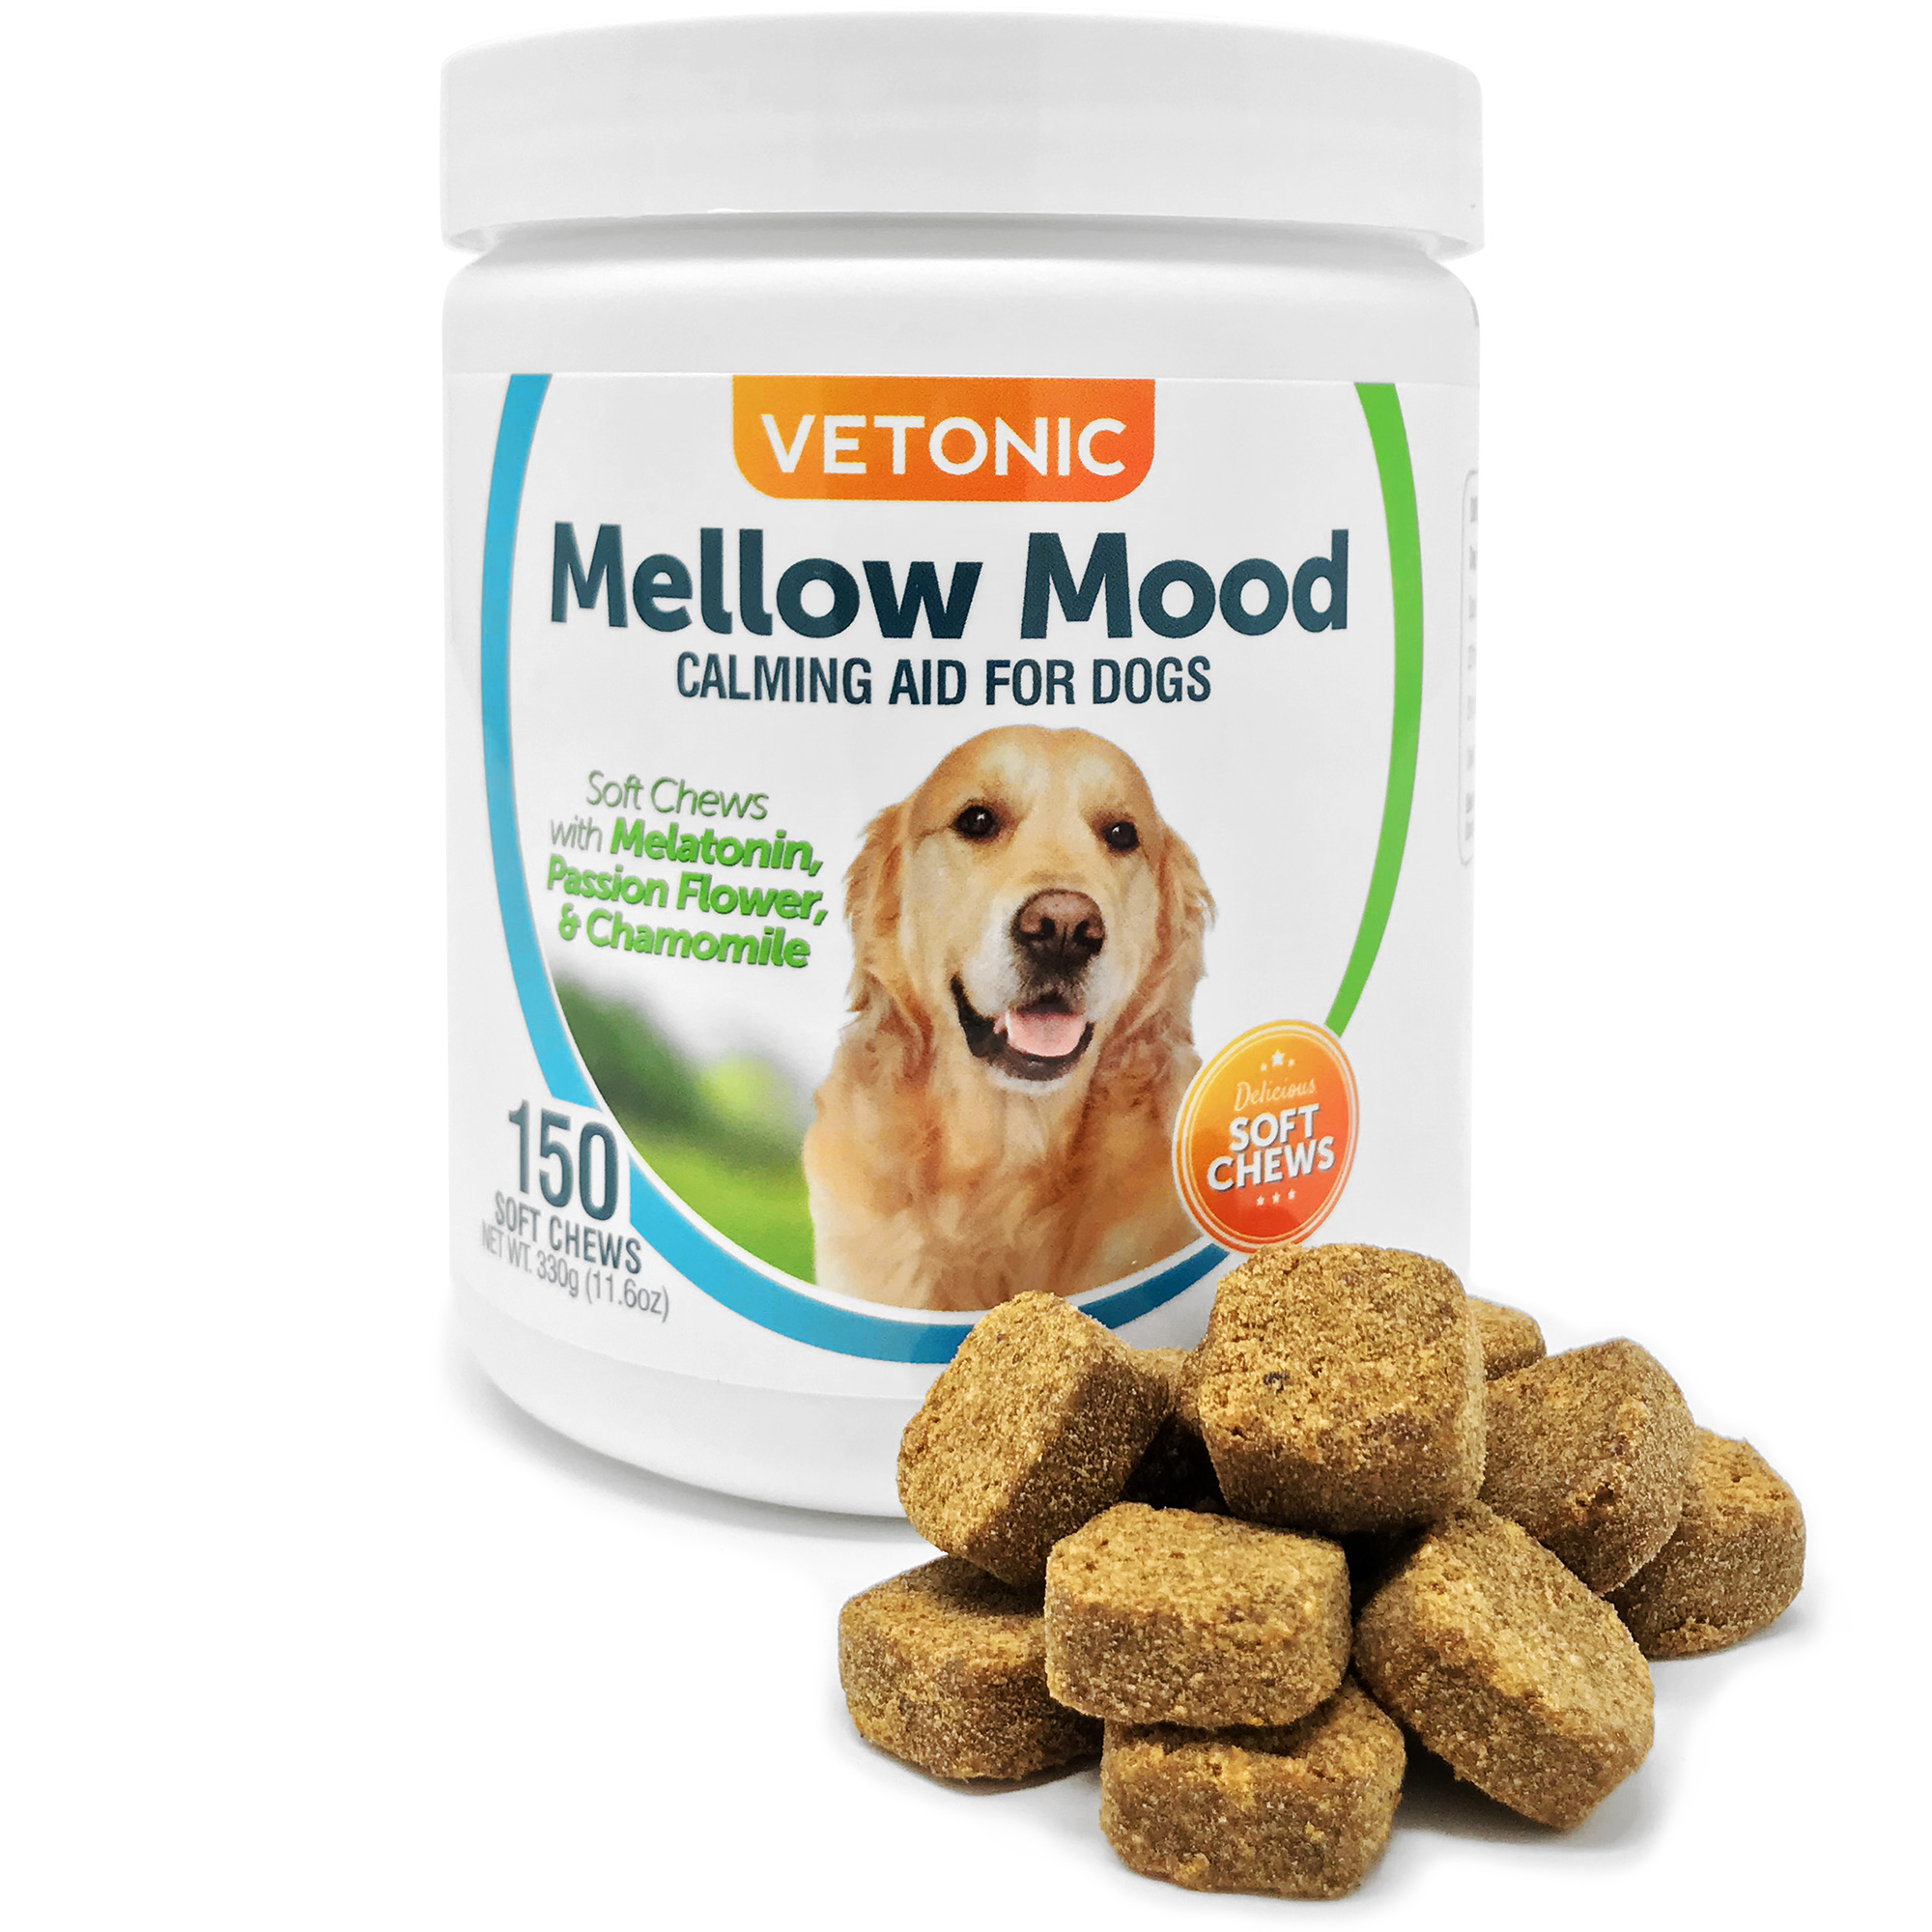 Mellow Mood Calming Aid for Dogs with Separation Anxiety and Stress, 150 Soft Chews